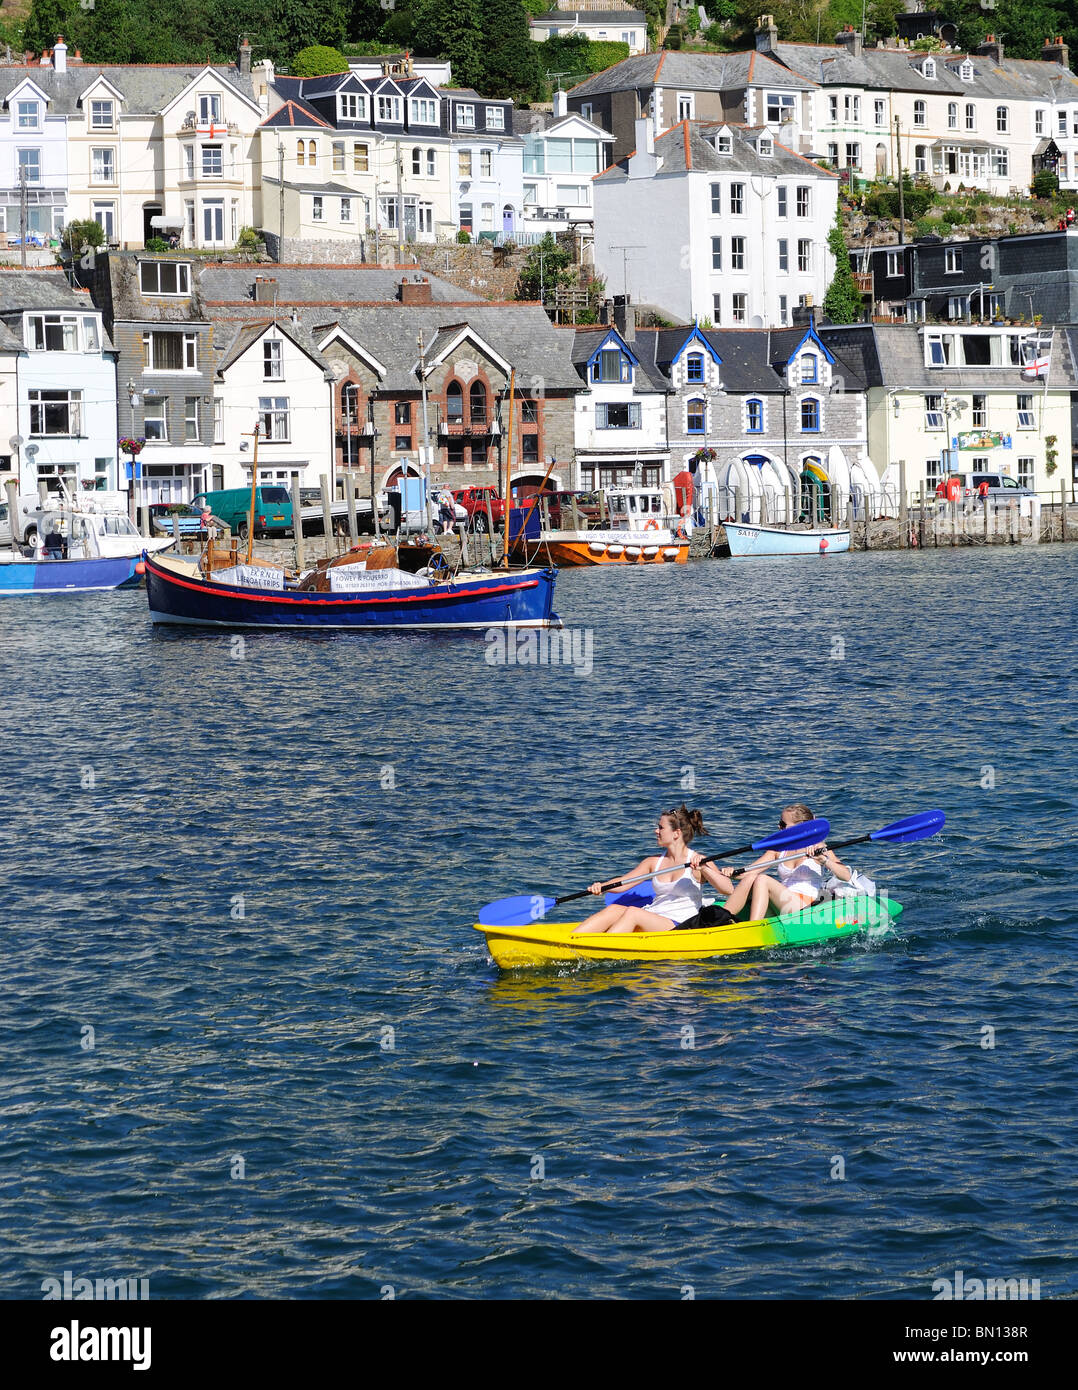 a canoe on the river at looe in cornwall, uk - Stock Image